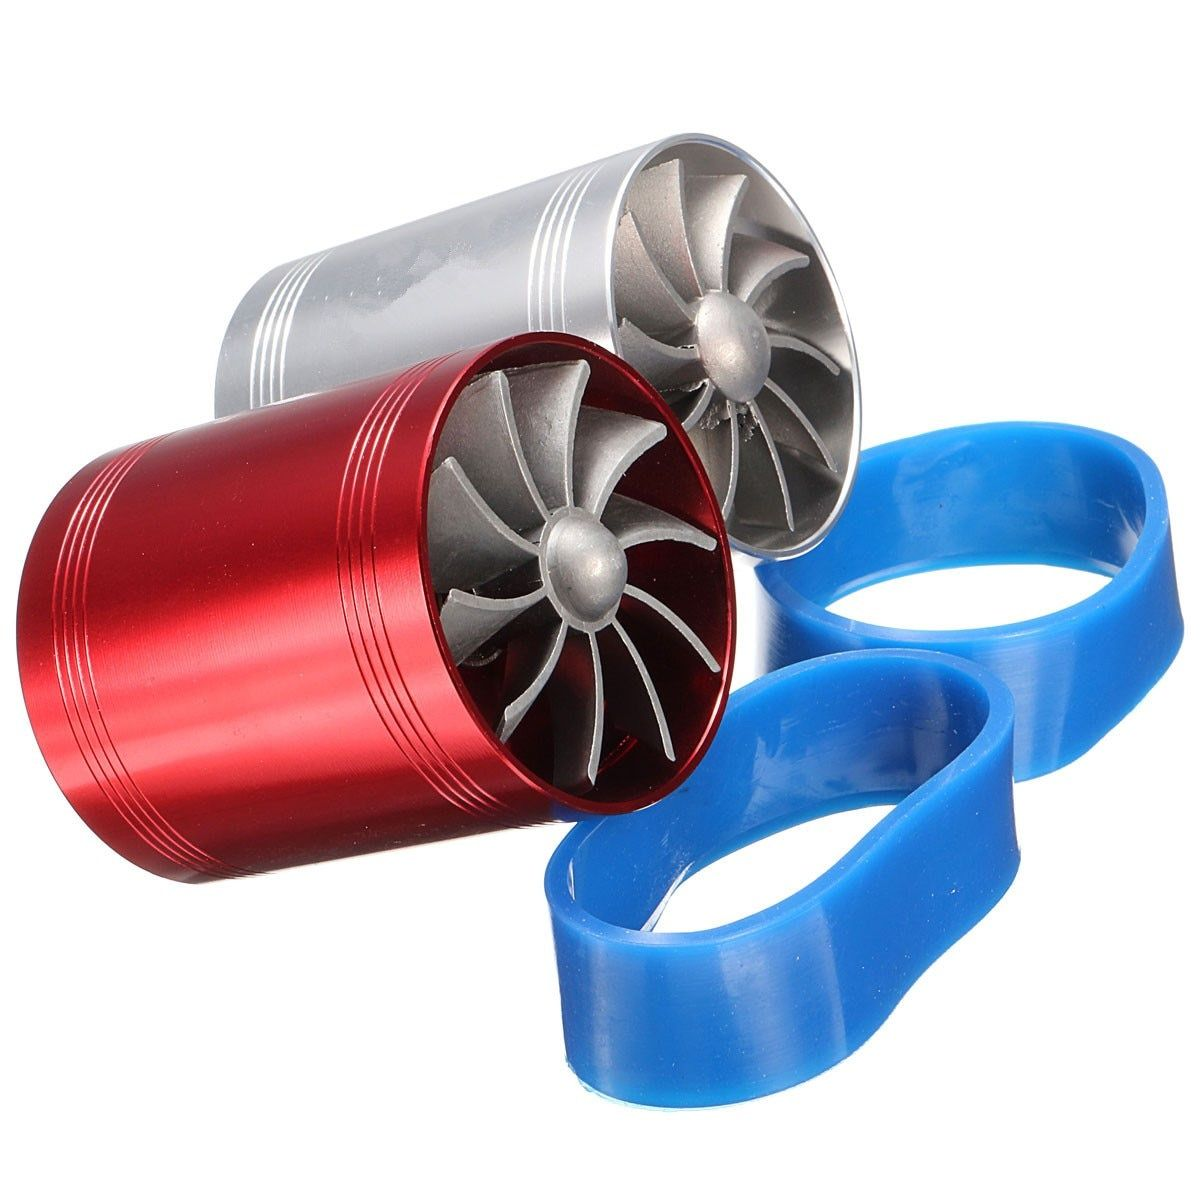 Universal Car Turbo Supercharger Air Intake Dual Fan Turbonator Gas Fuel Saver Red Chrome Aluminum